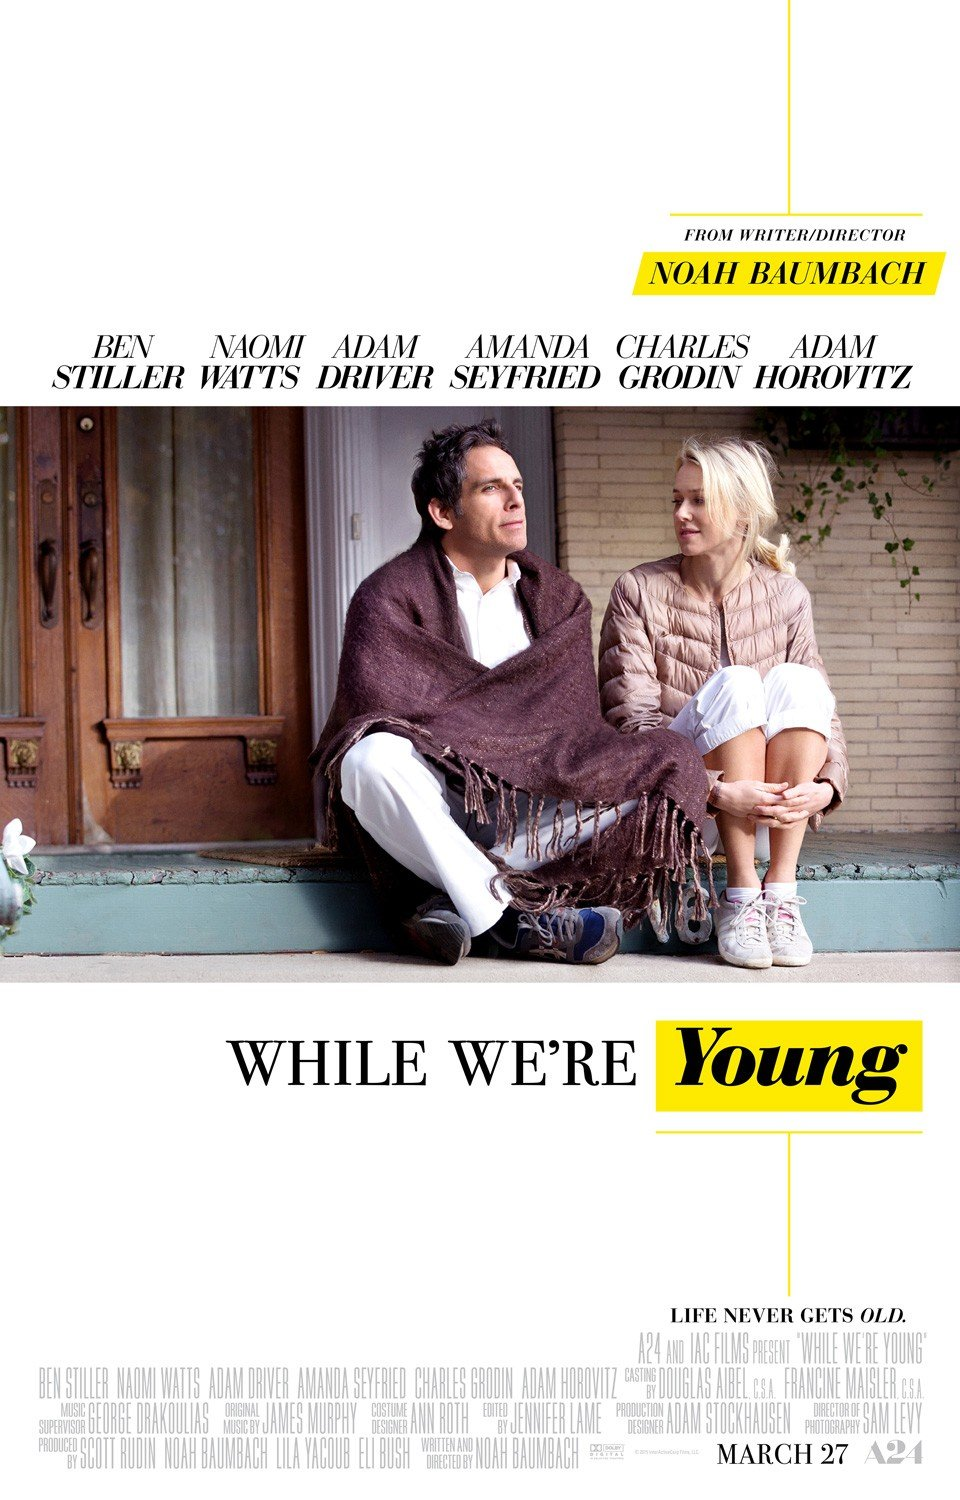 WHILE-WE'RE-YOUNG-movie-poster